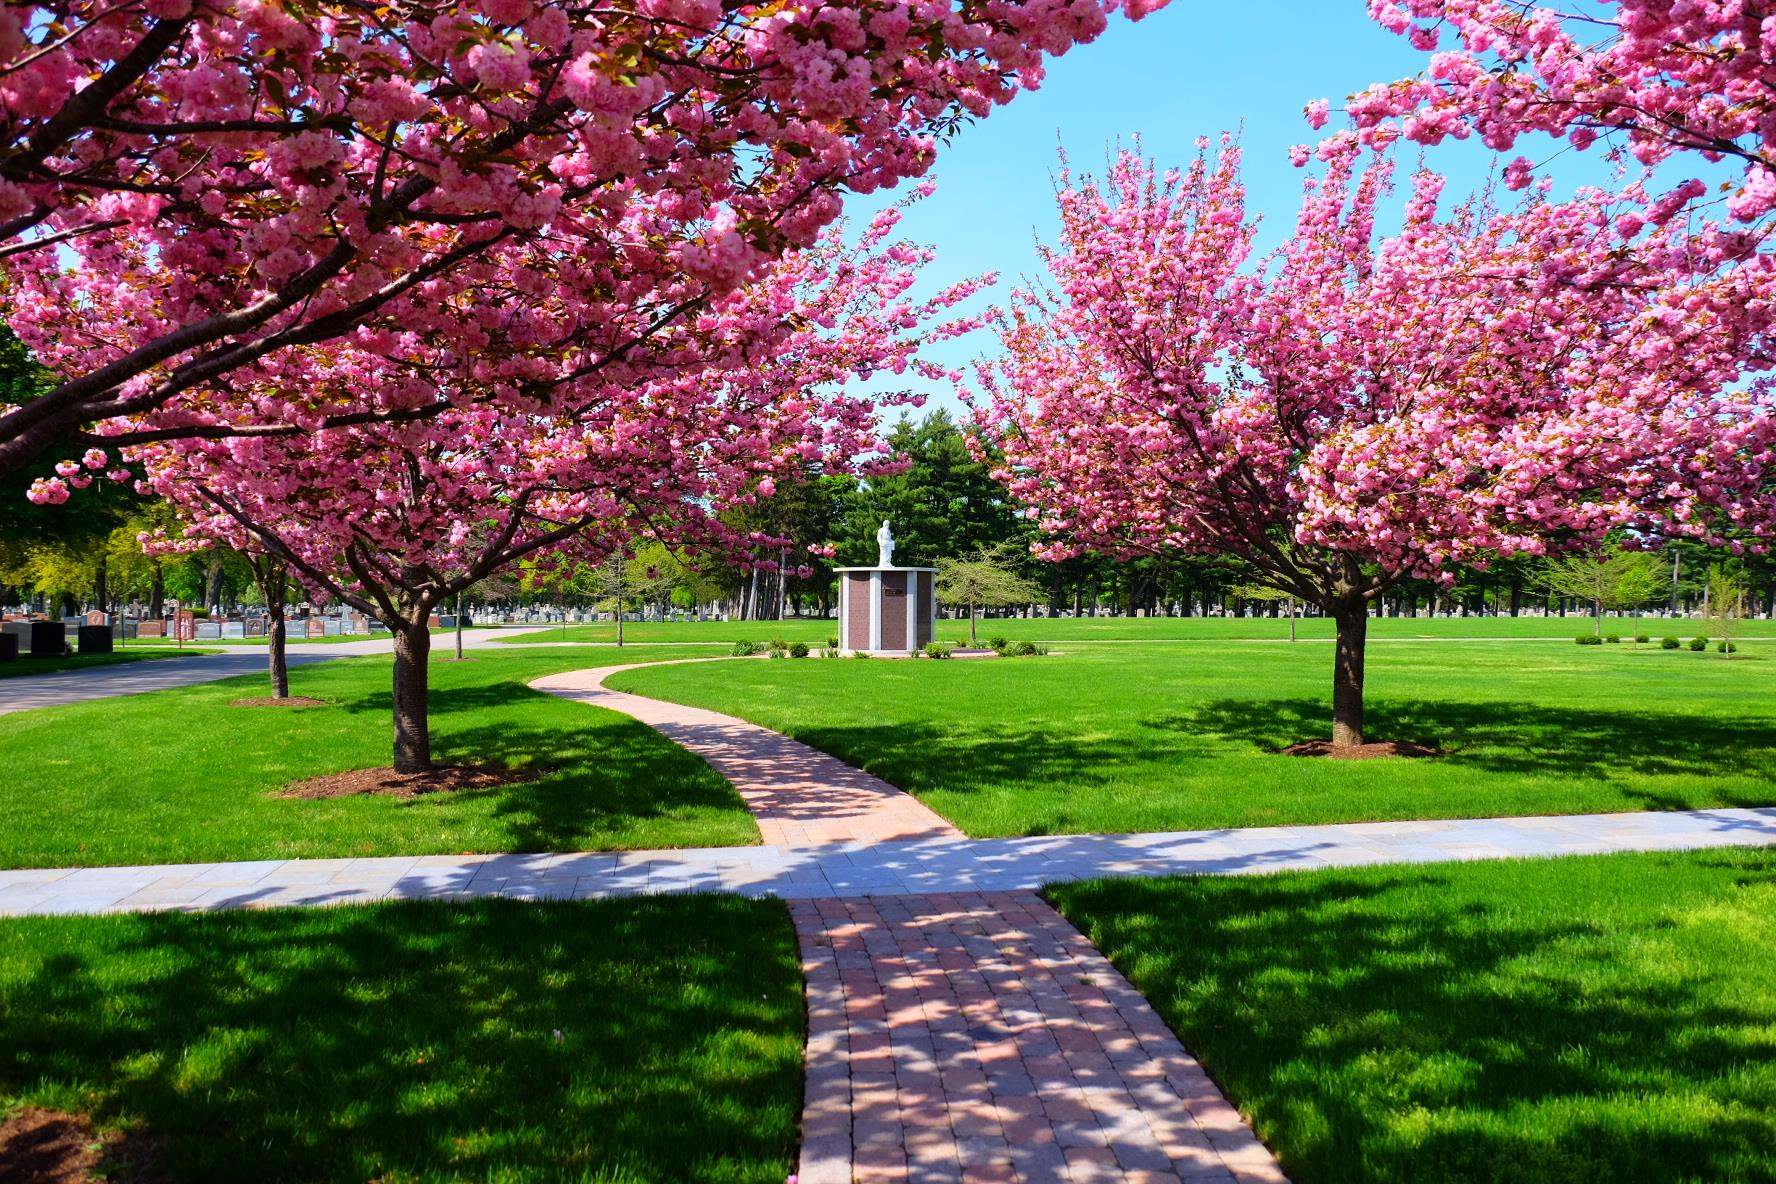 cremation garden with pink trees